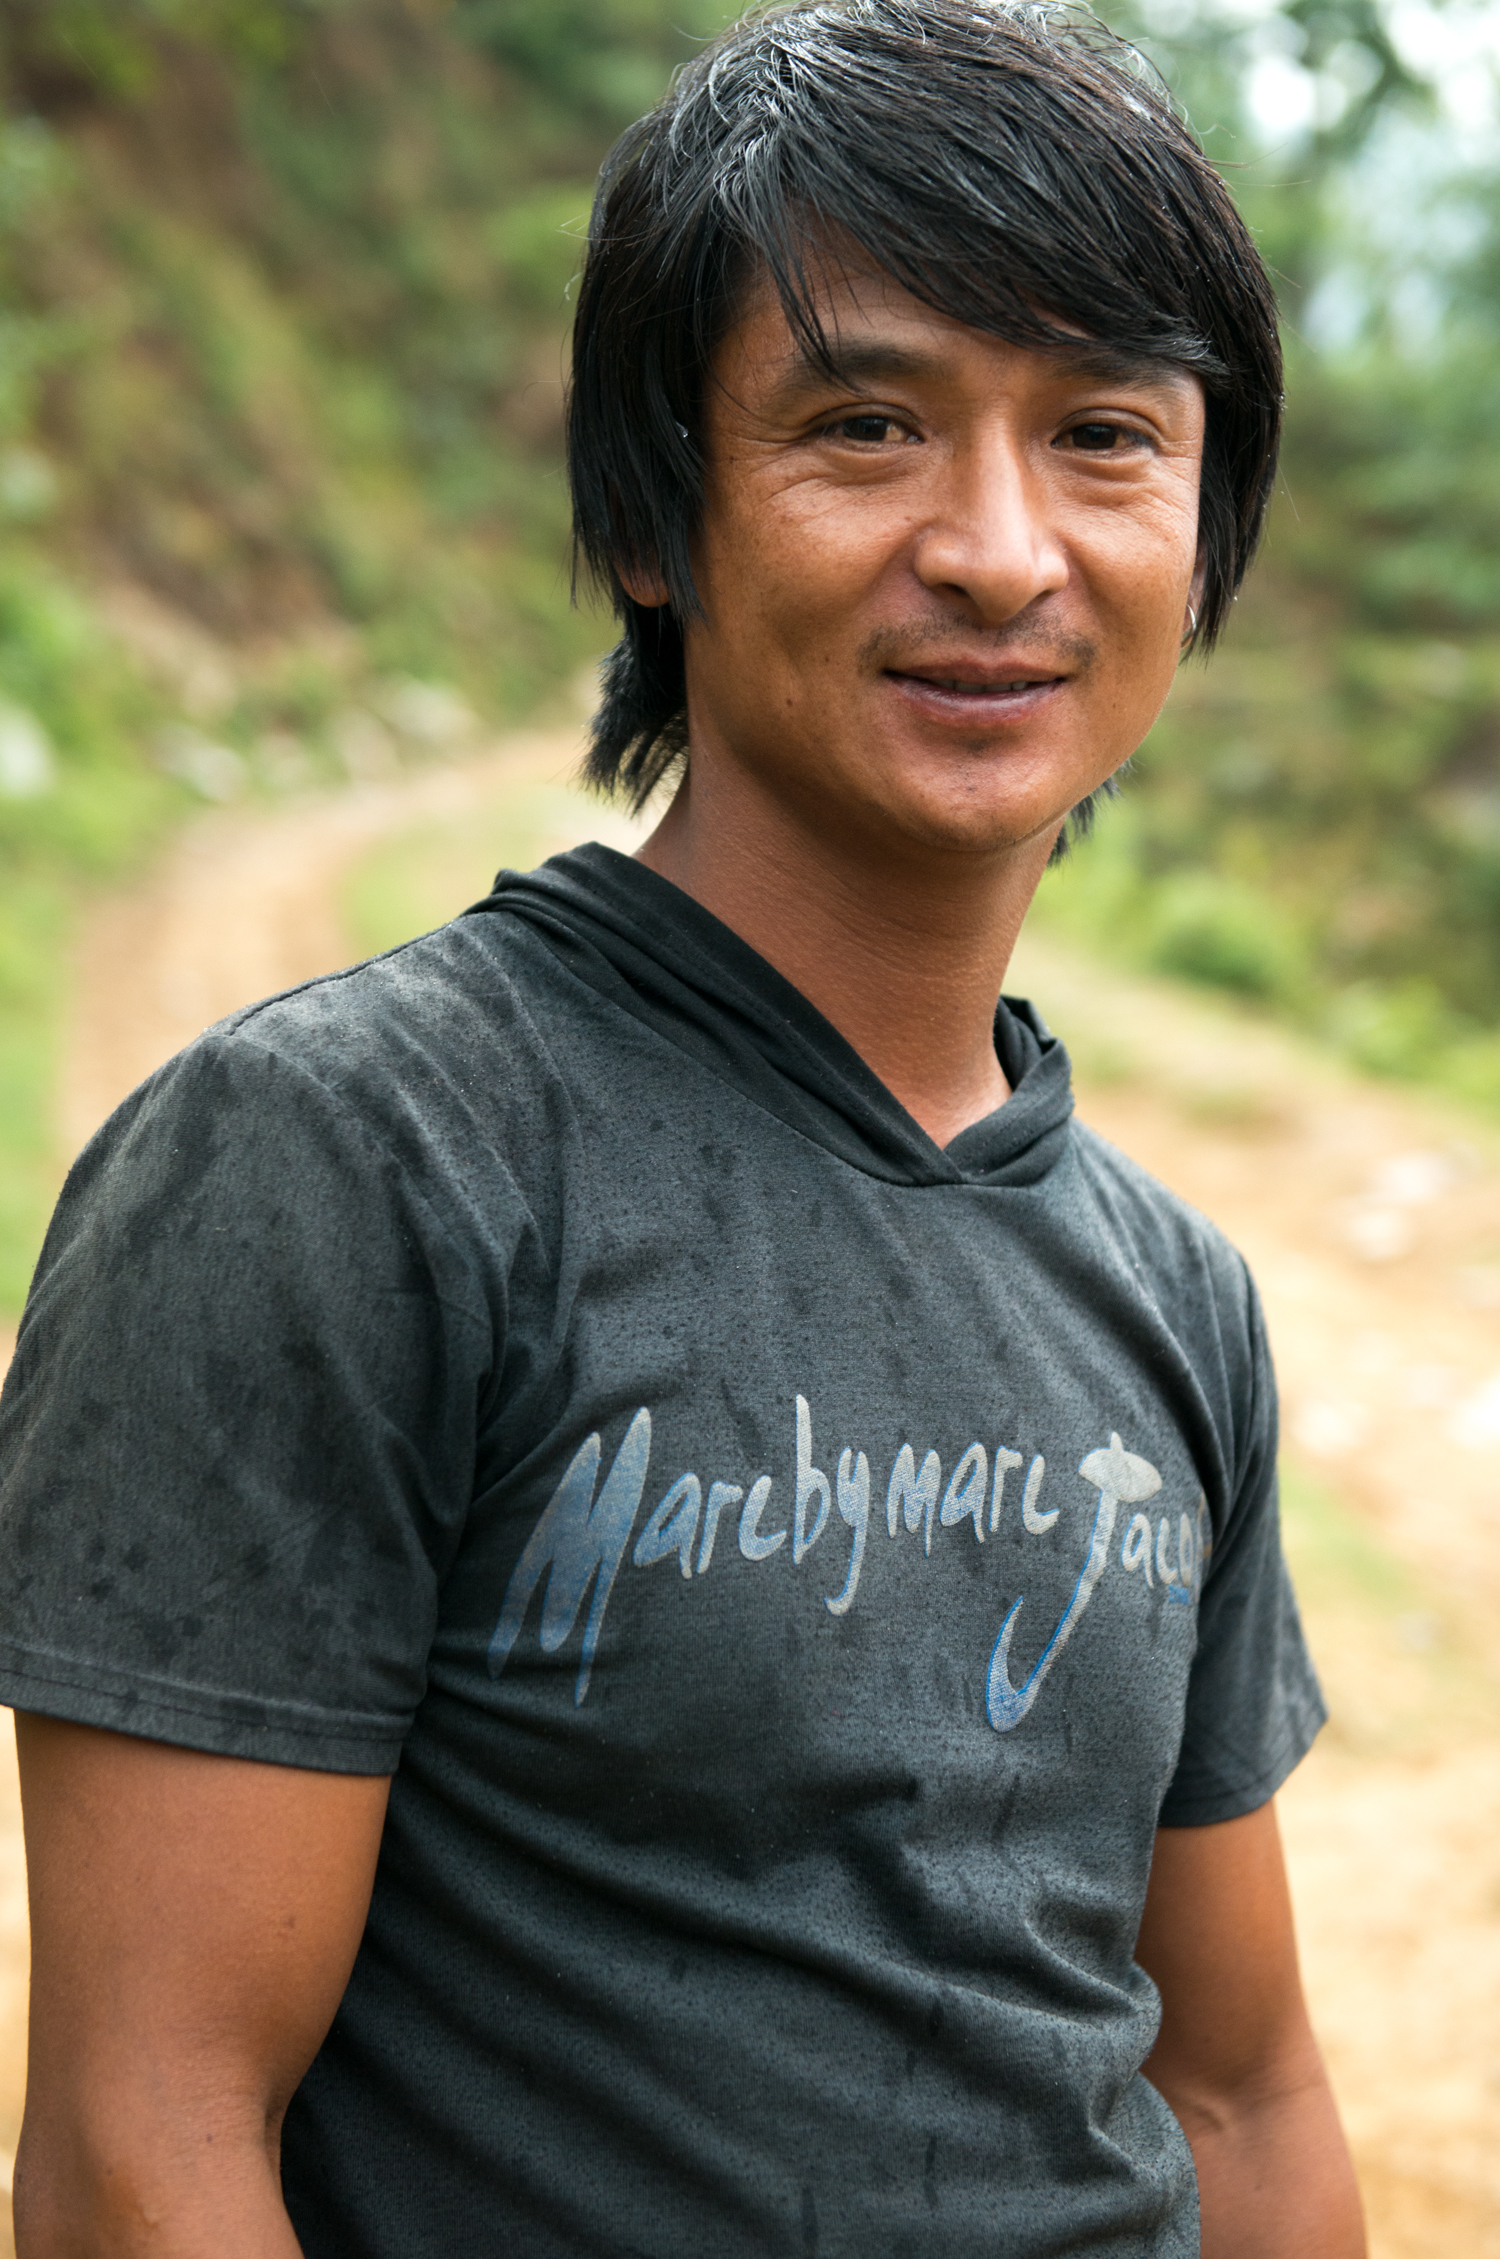 Our 'Jackie Chan' resembling driver smiled as we provided resources to his village. He drove our truck up impossible hills and roads.